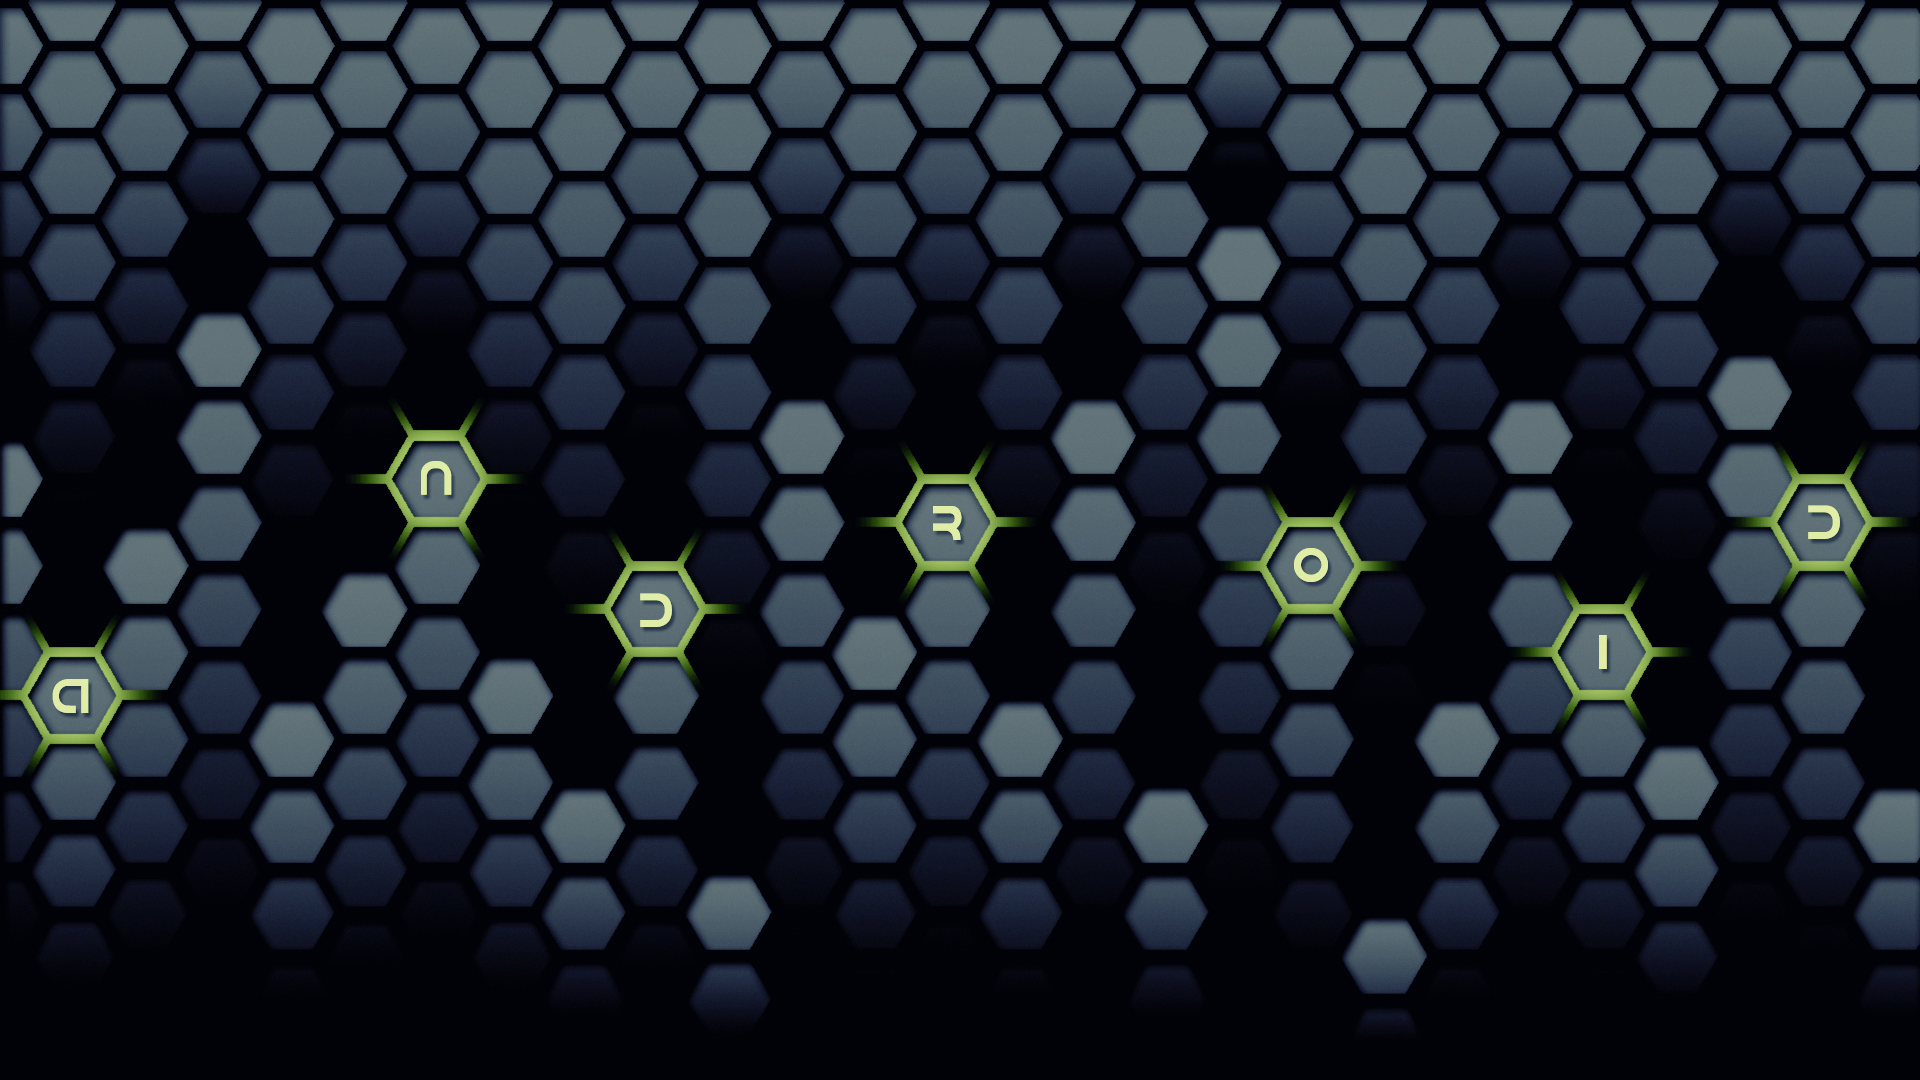 Trendy Android Honeycomb Hd Wallpaper Background 1920x1080px